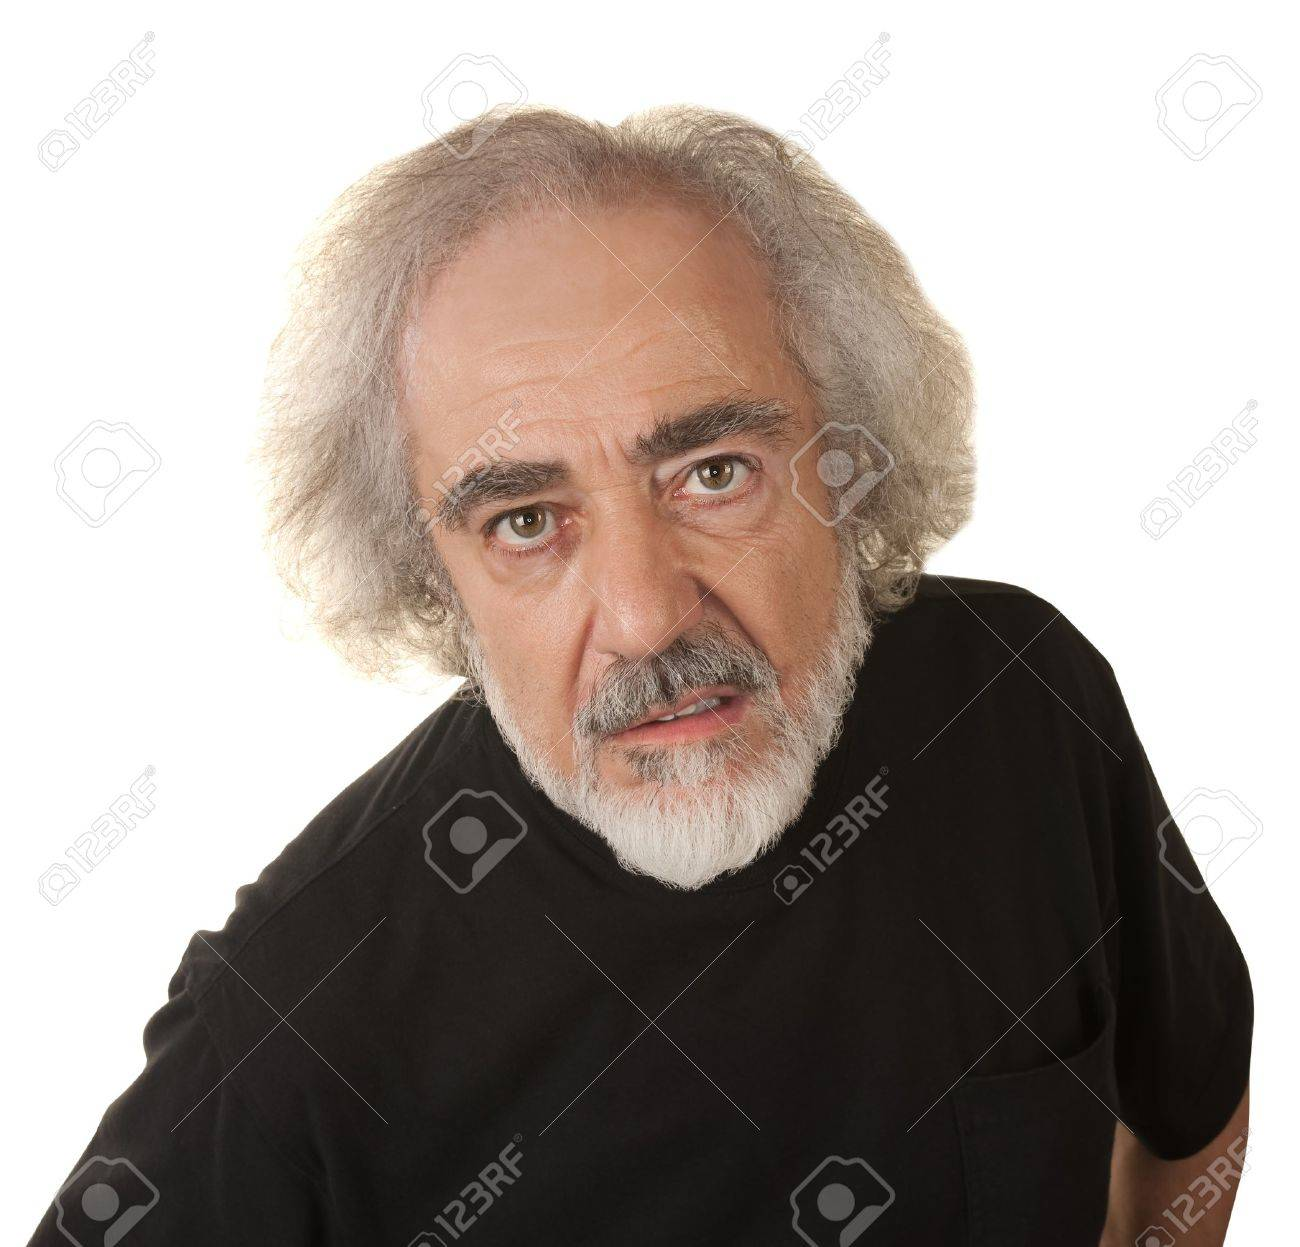 Disappointed older man in black over isolated background Stock Photo - 16472967